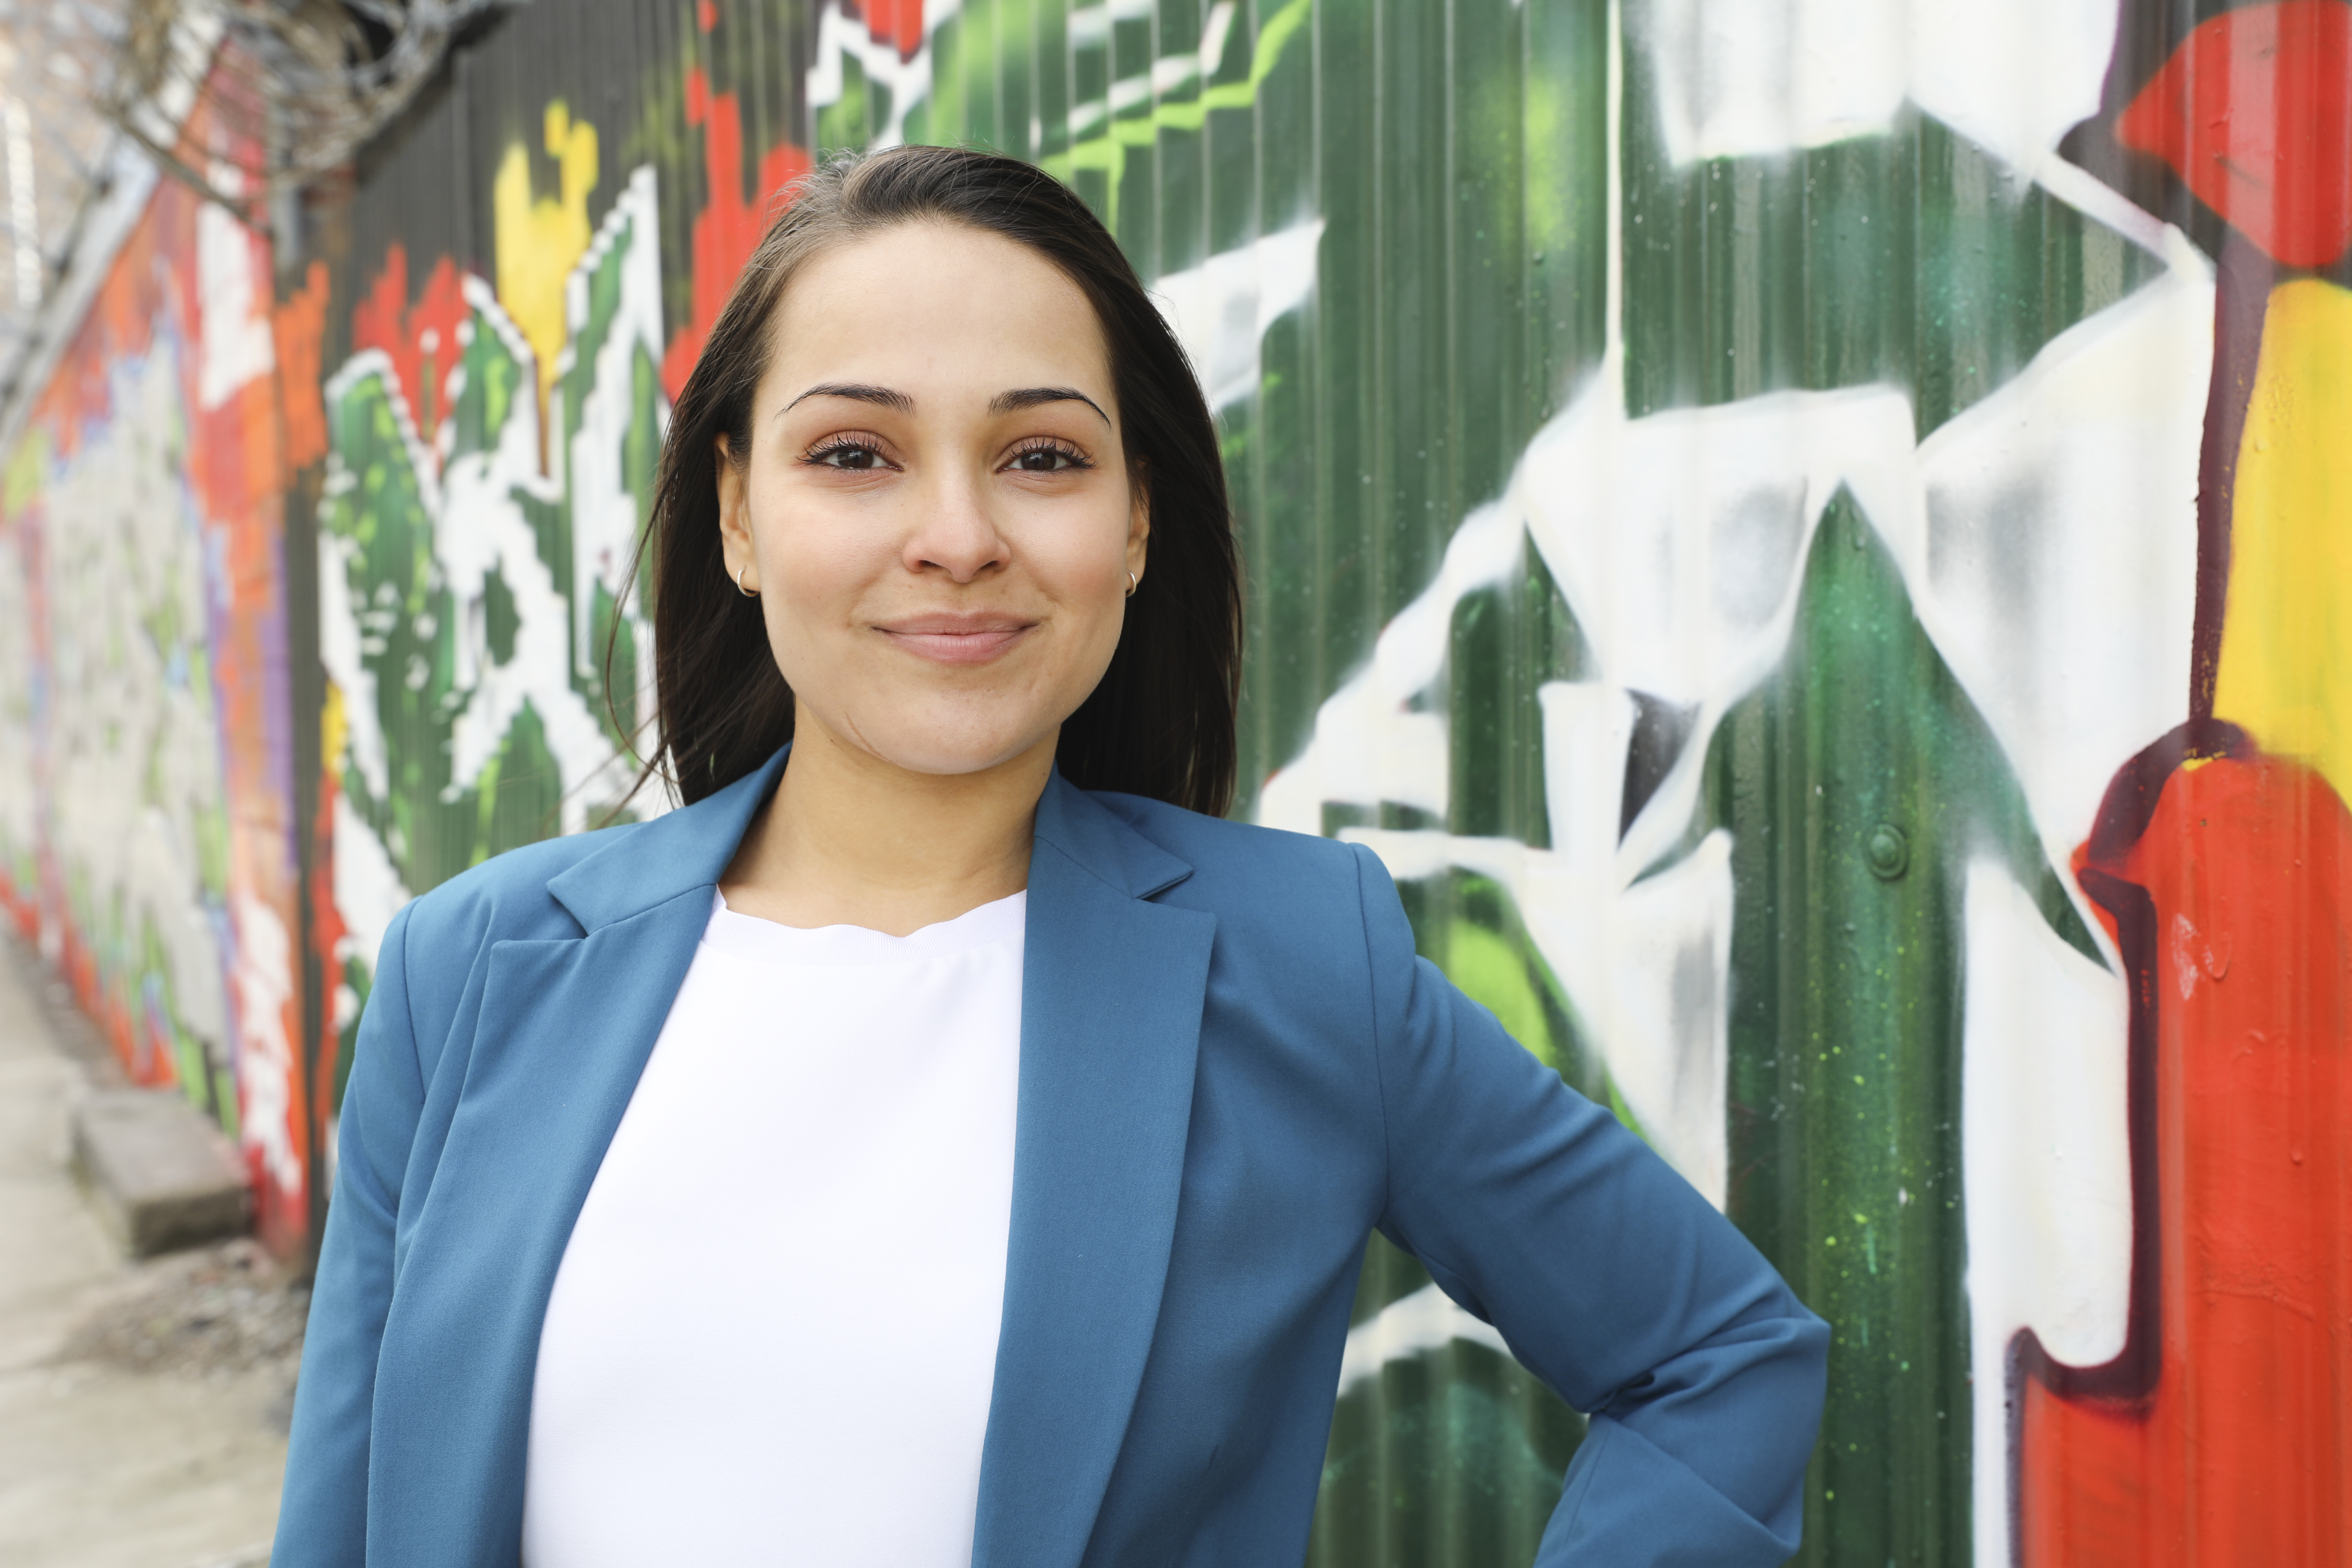 Image of Yanely Espinal in front of a wall of graffiti. She is wearing a blue blazer and white shirt.